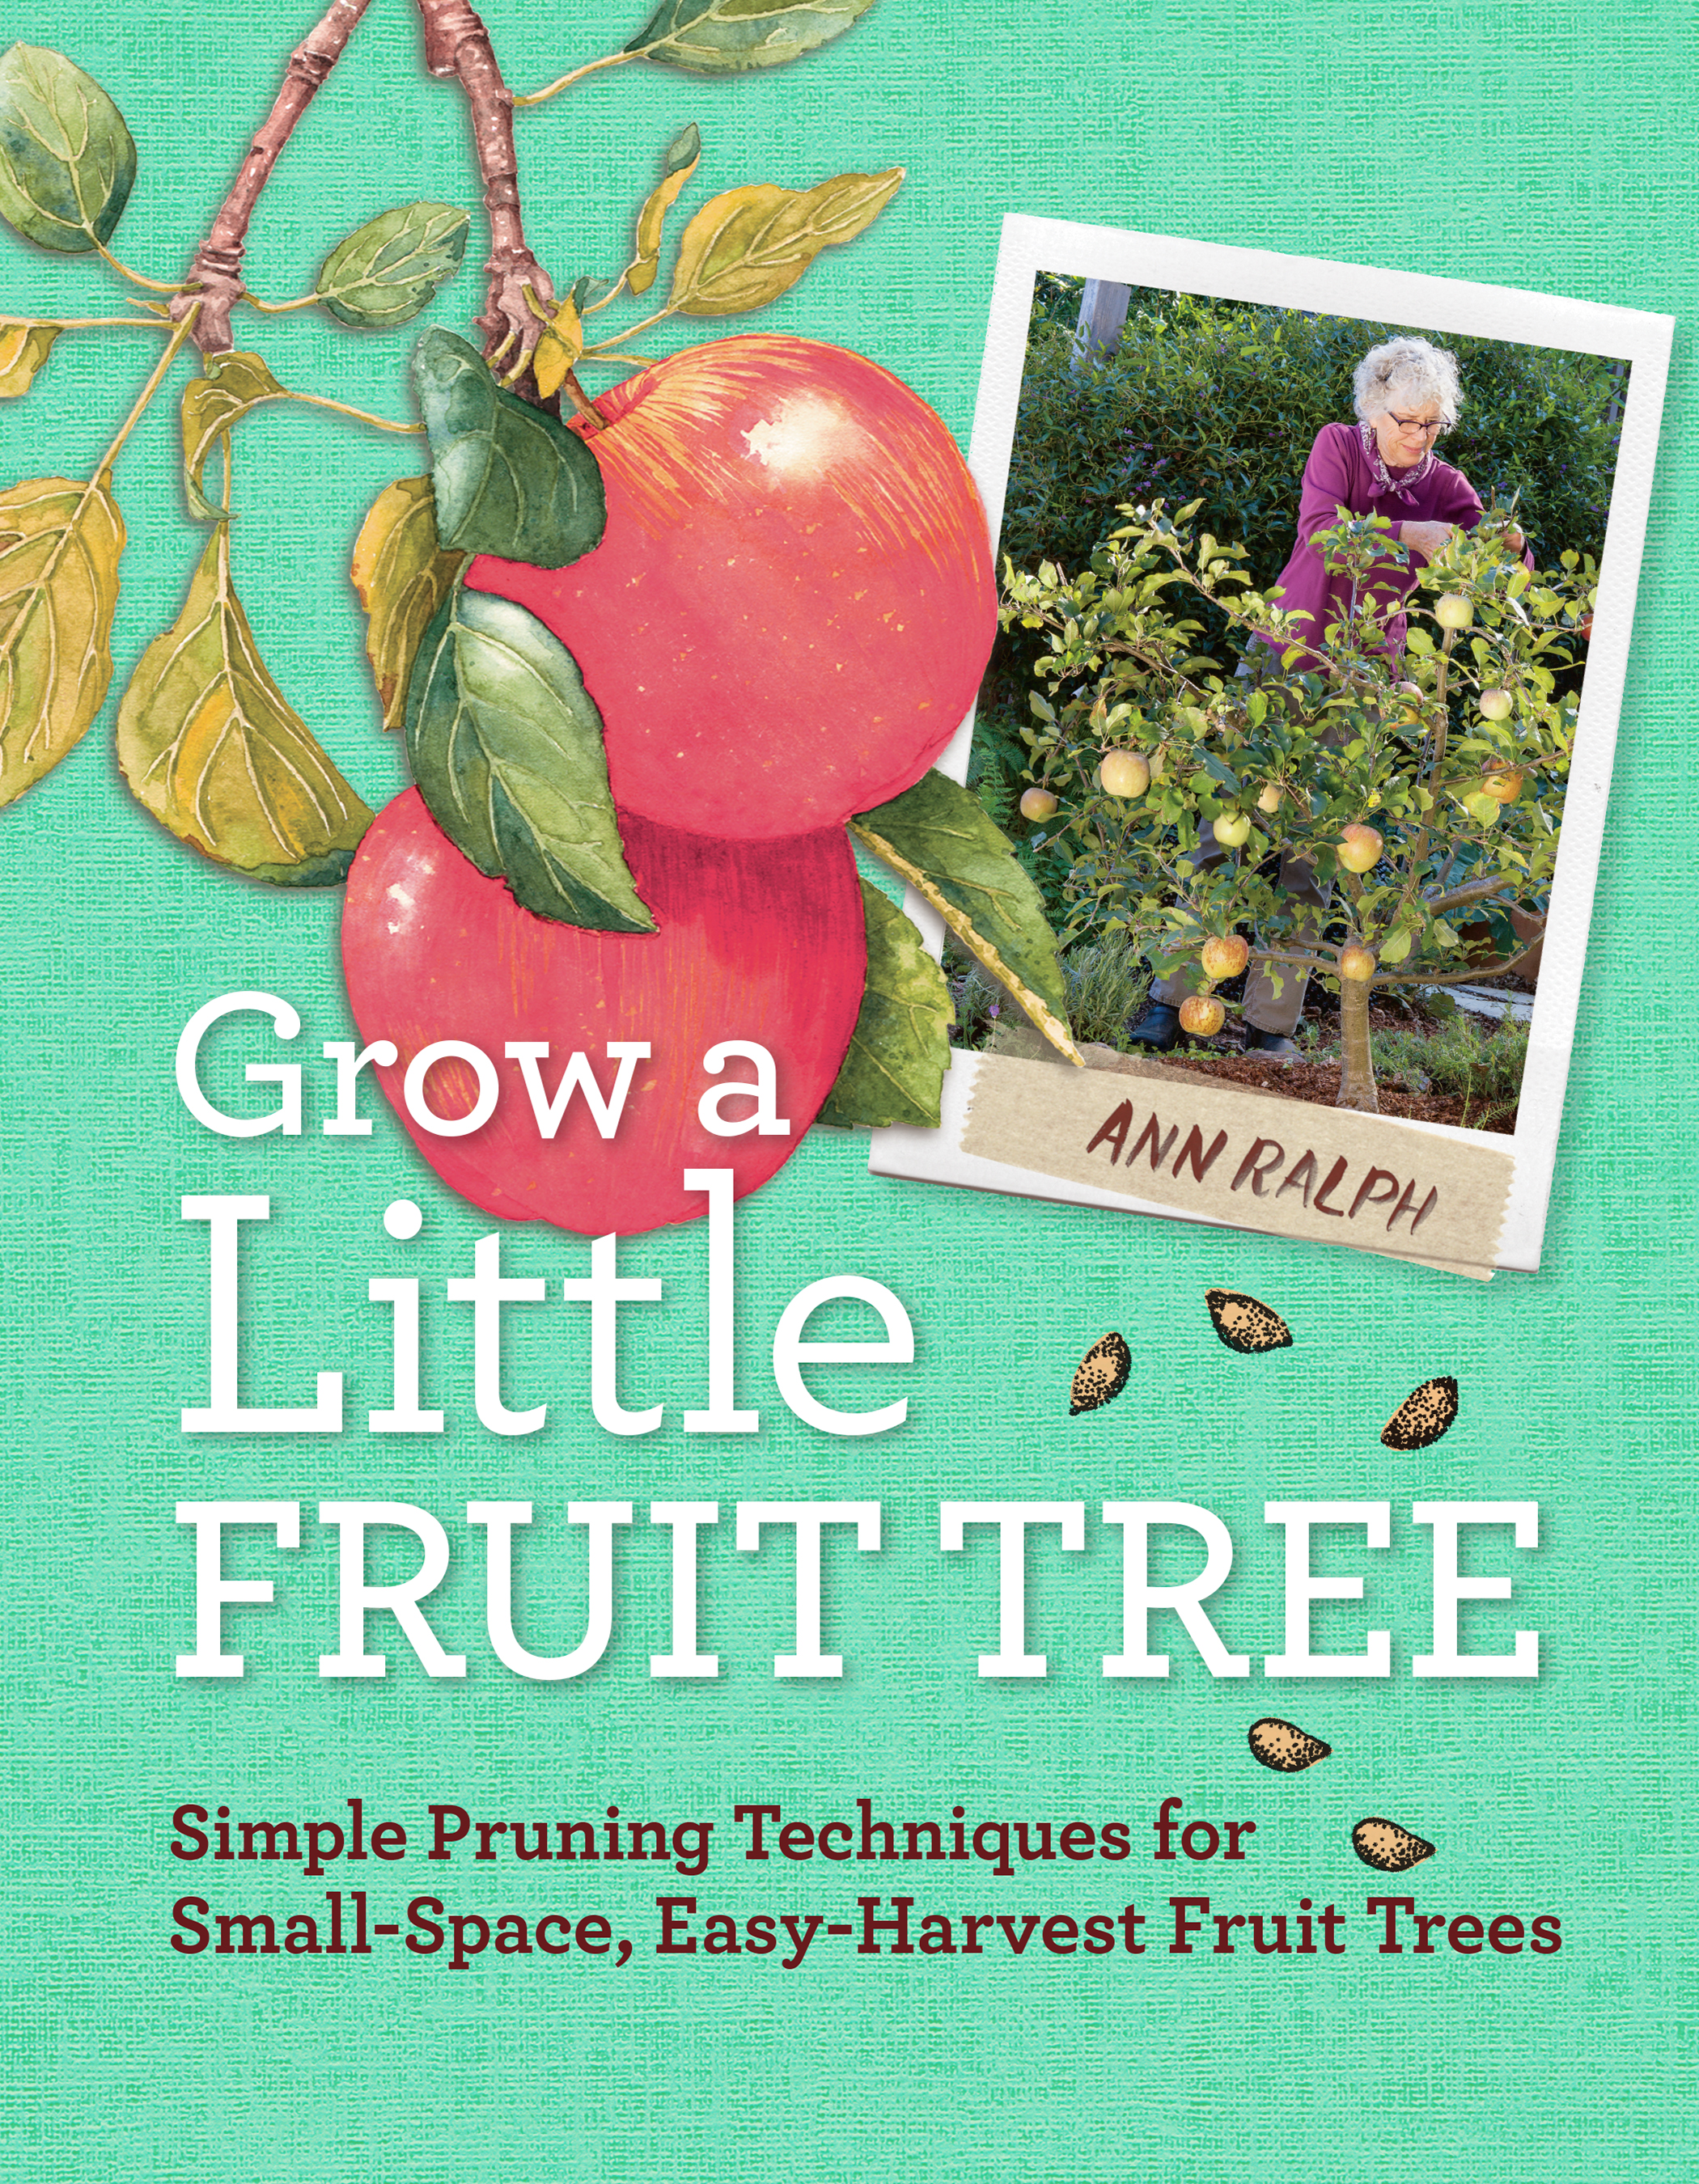 Grow a Little Fruit Tree Simple Pruning Techniques for Small-Space, Easy-Harvest Fruit Trees - Ann Ralph